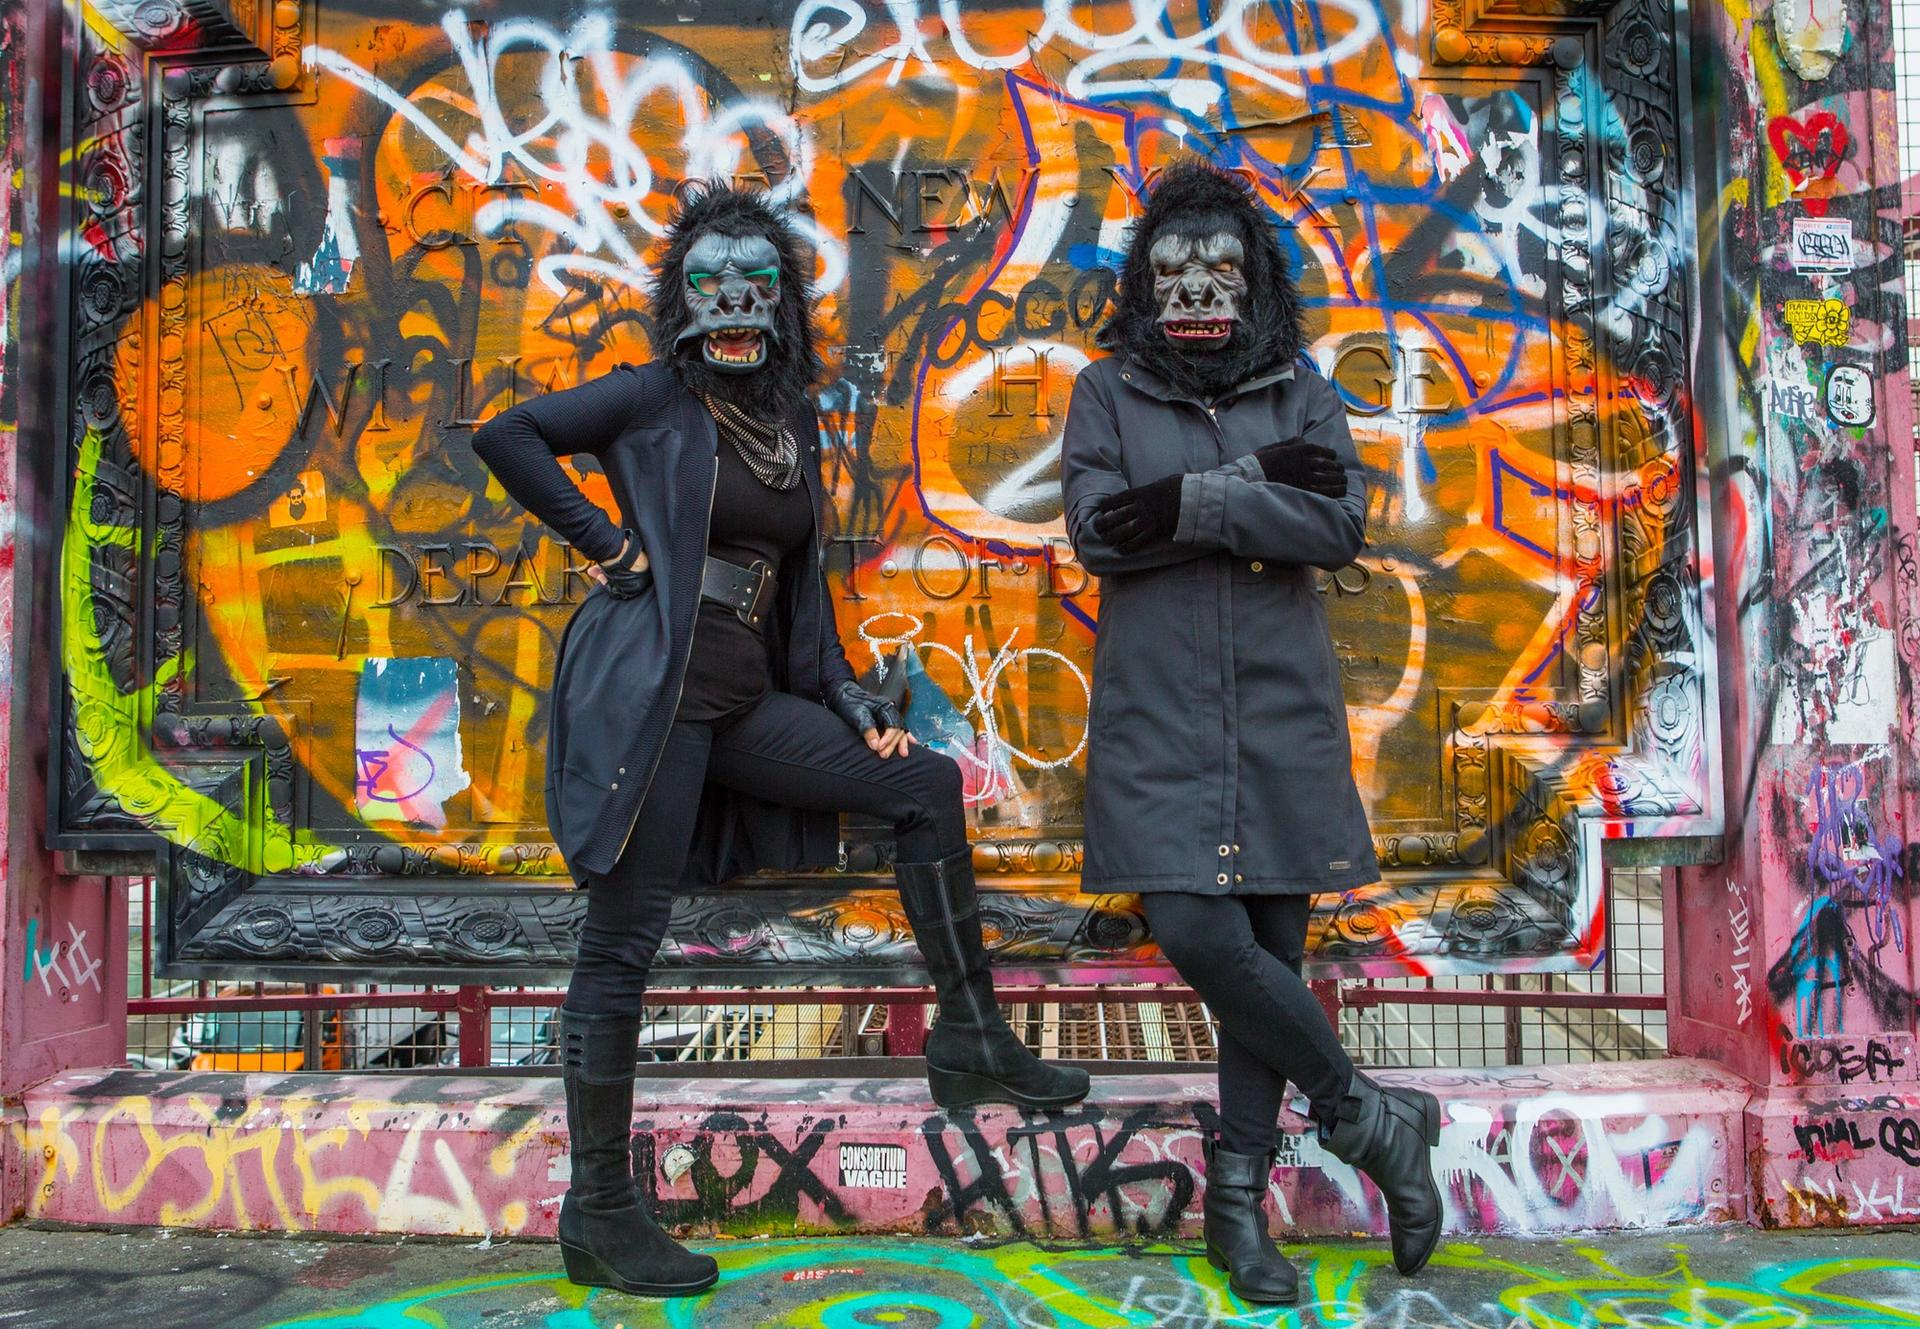 The Guerrilla Girls are bringing their feminist message to a billboard near you this summer Courtesy of the artists